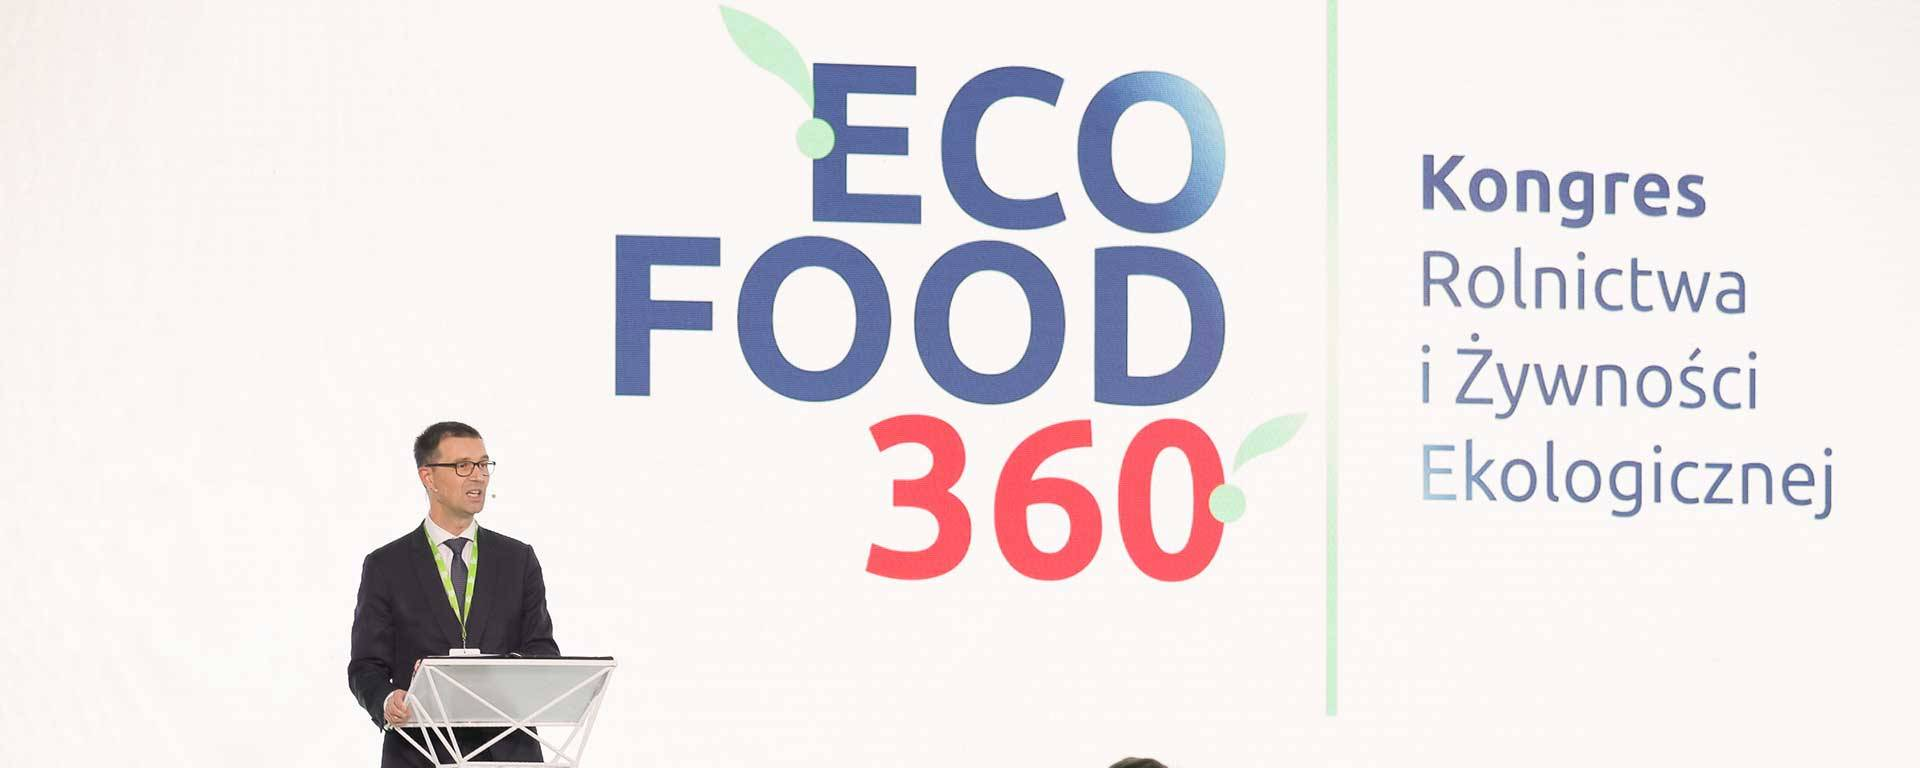 Eco Food 360 – congress organized by Carrefour Poland